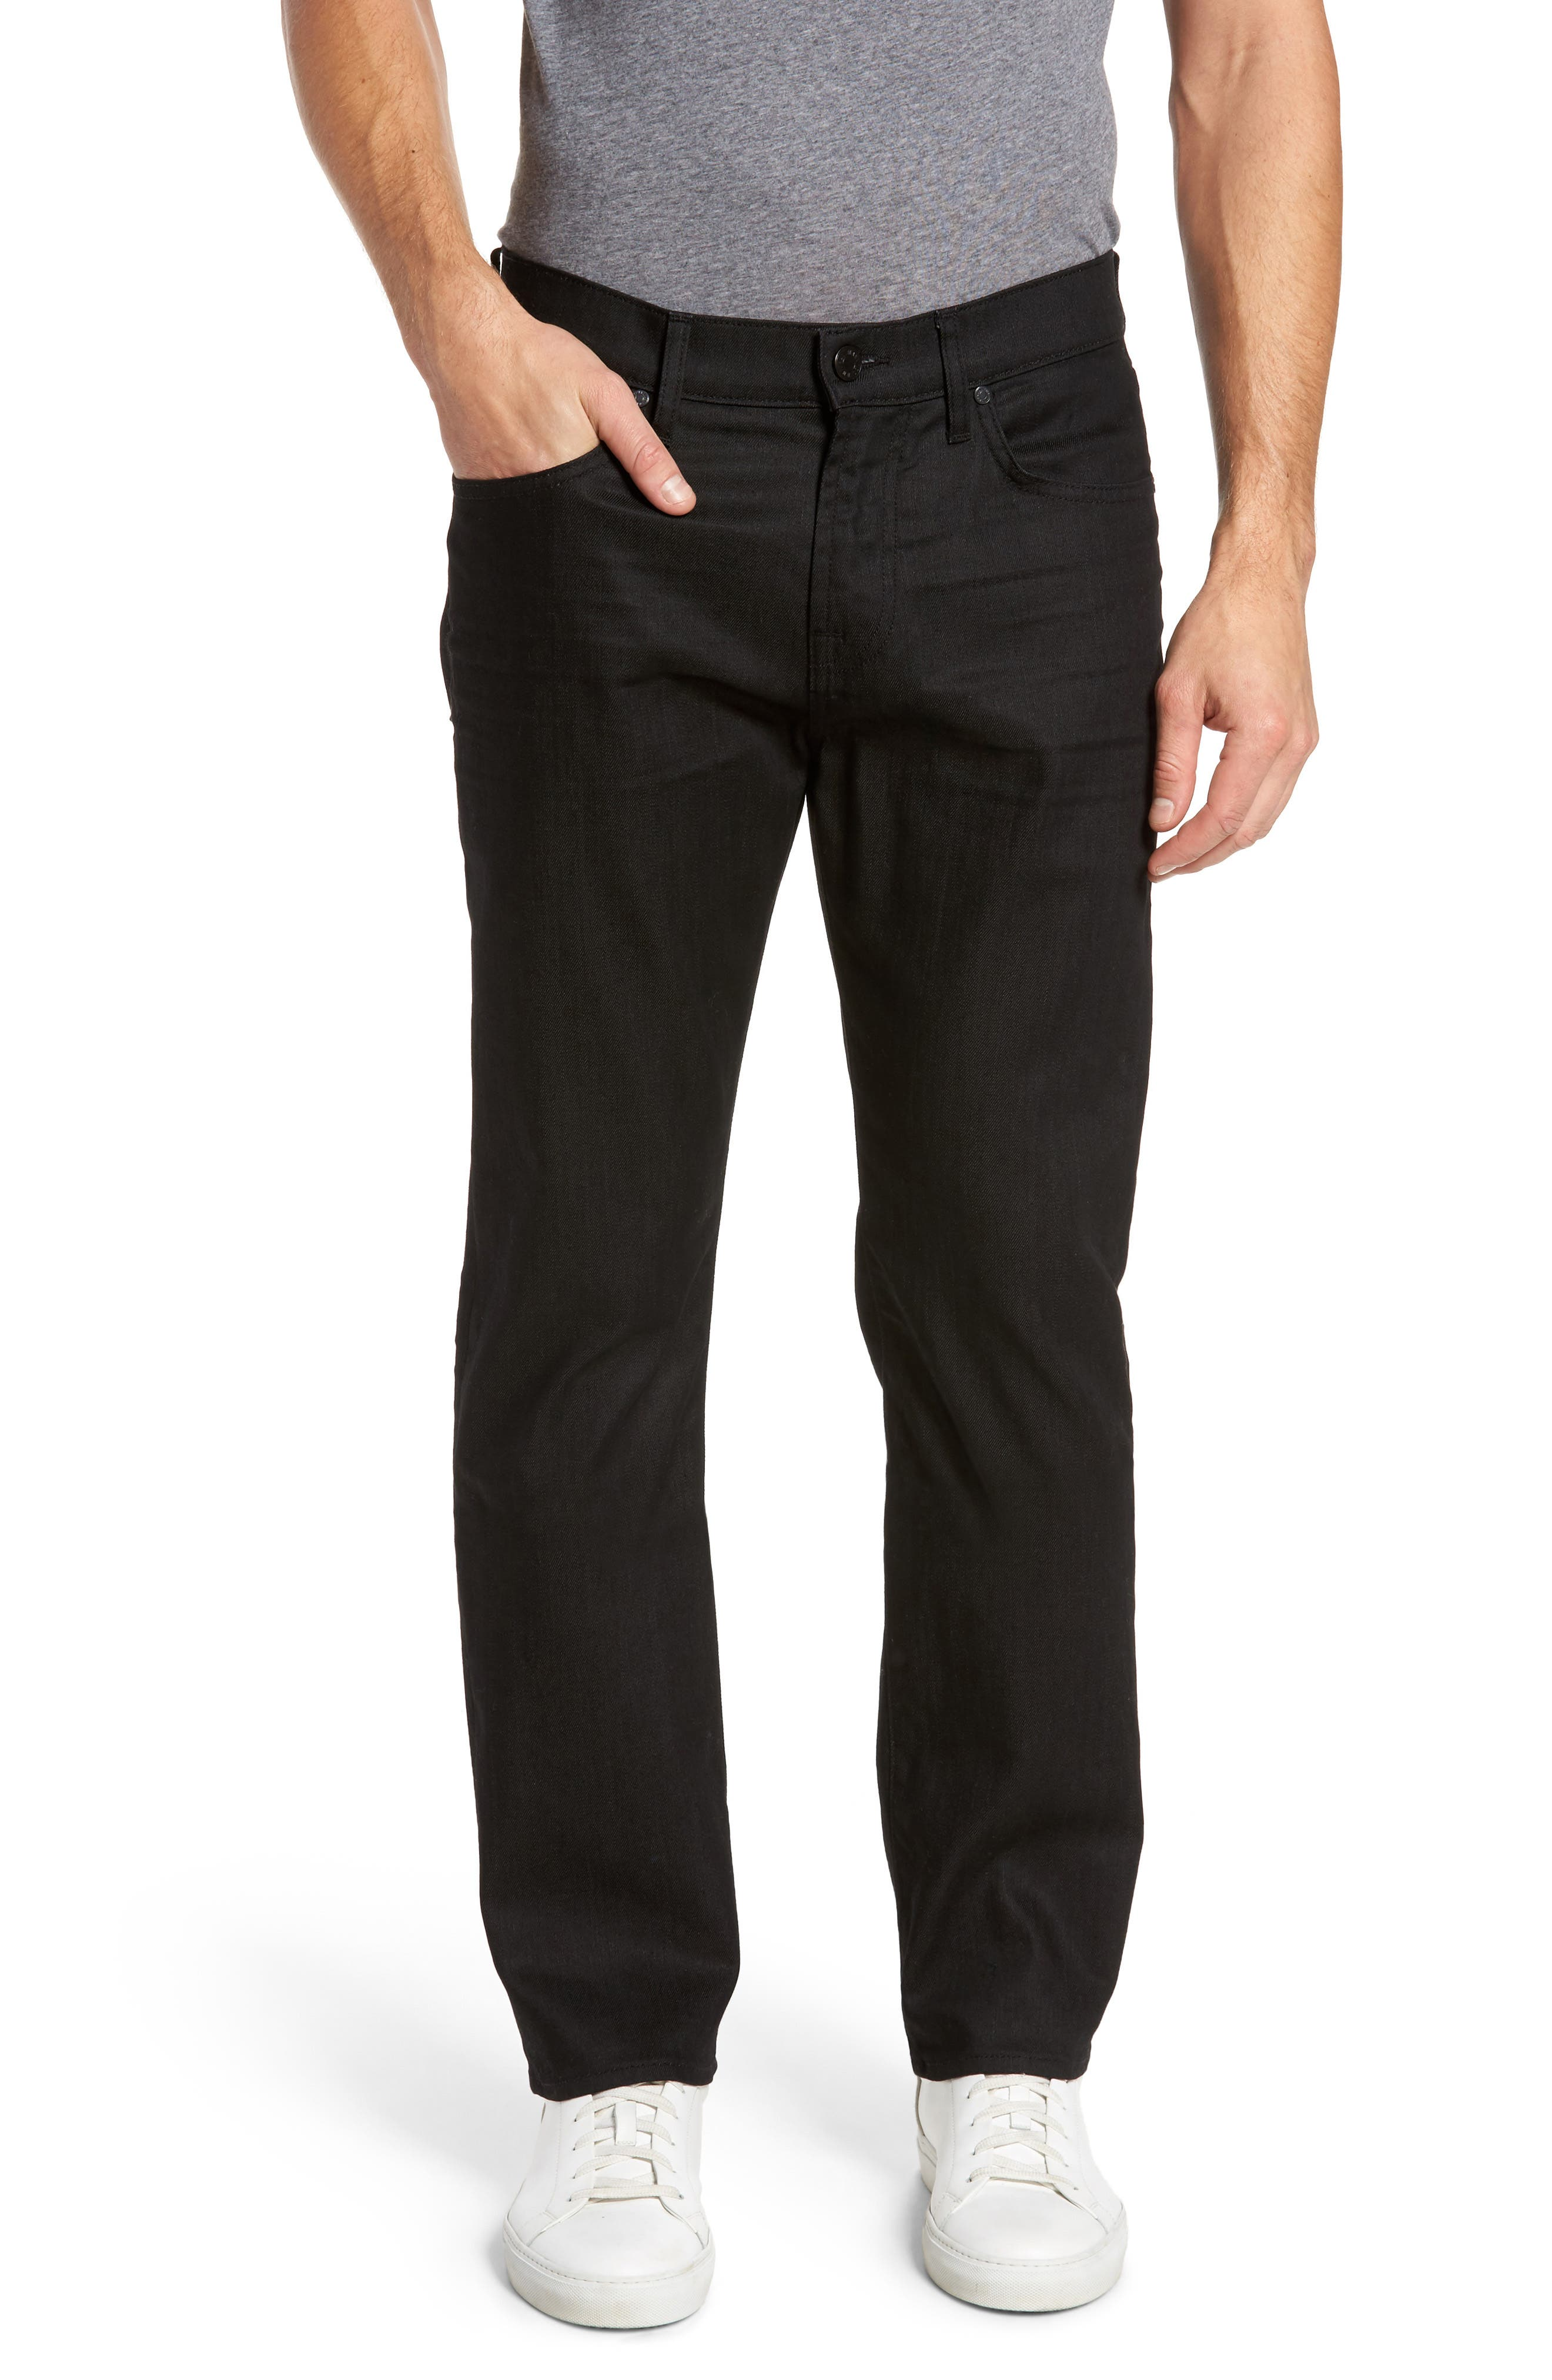 Alternate Image 1 Selected - 7 For All Mankind® The Straight Slim Straight Fit Jeans (Soirée Black)